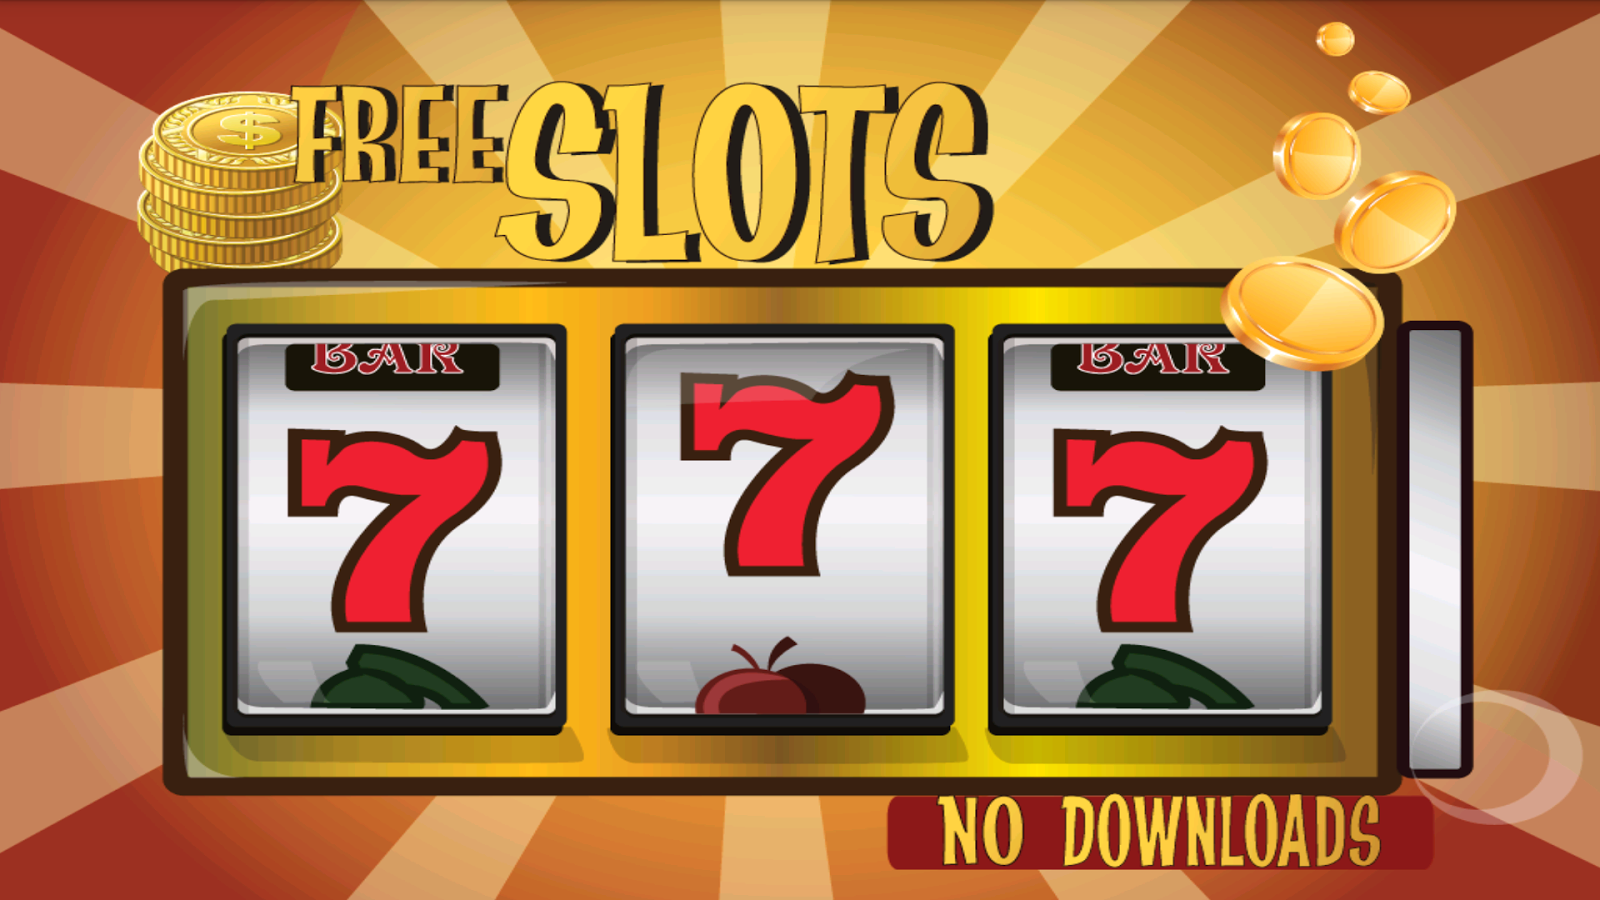 Firecrackers Slots - Free to Play Demo Version